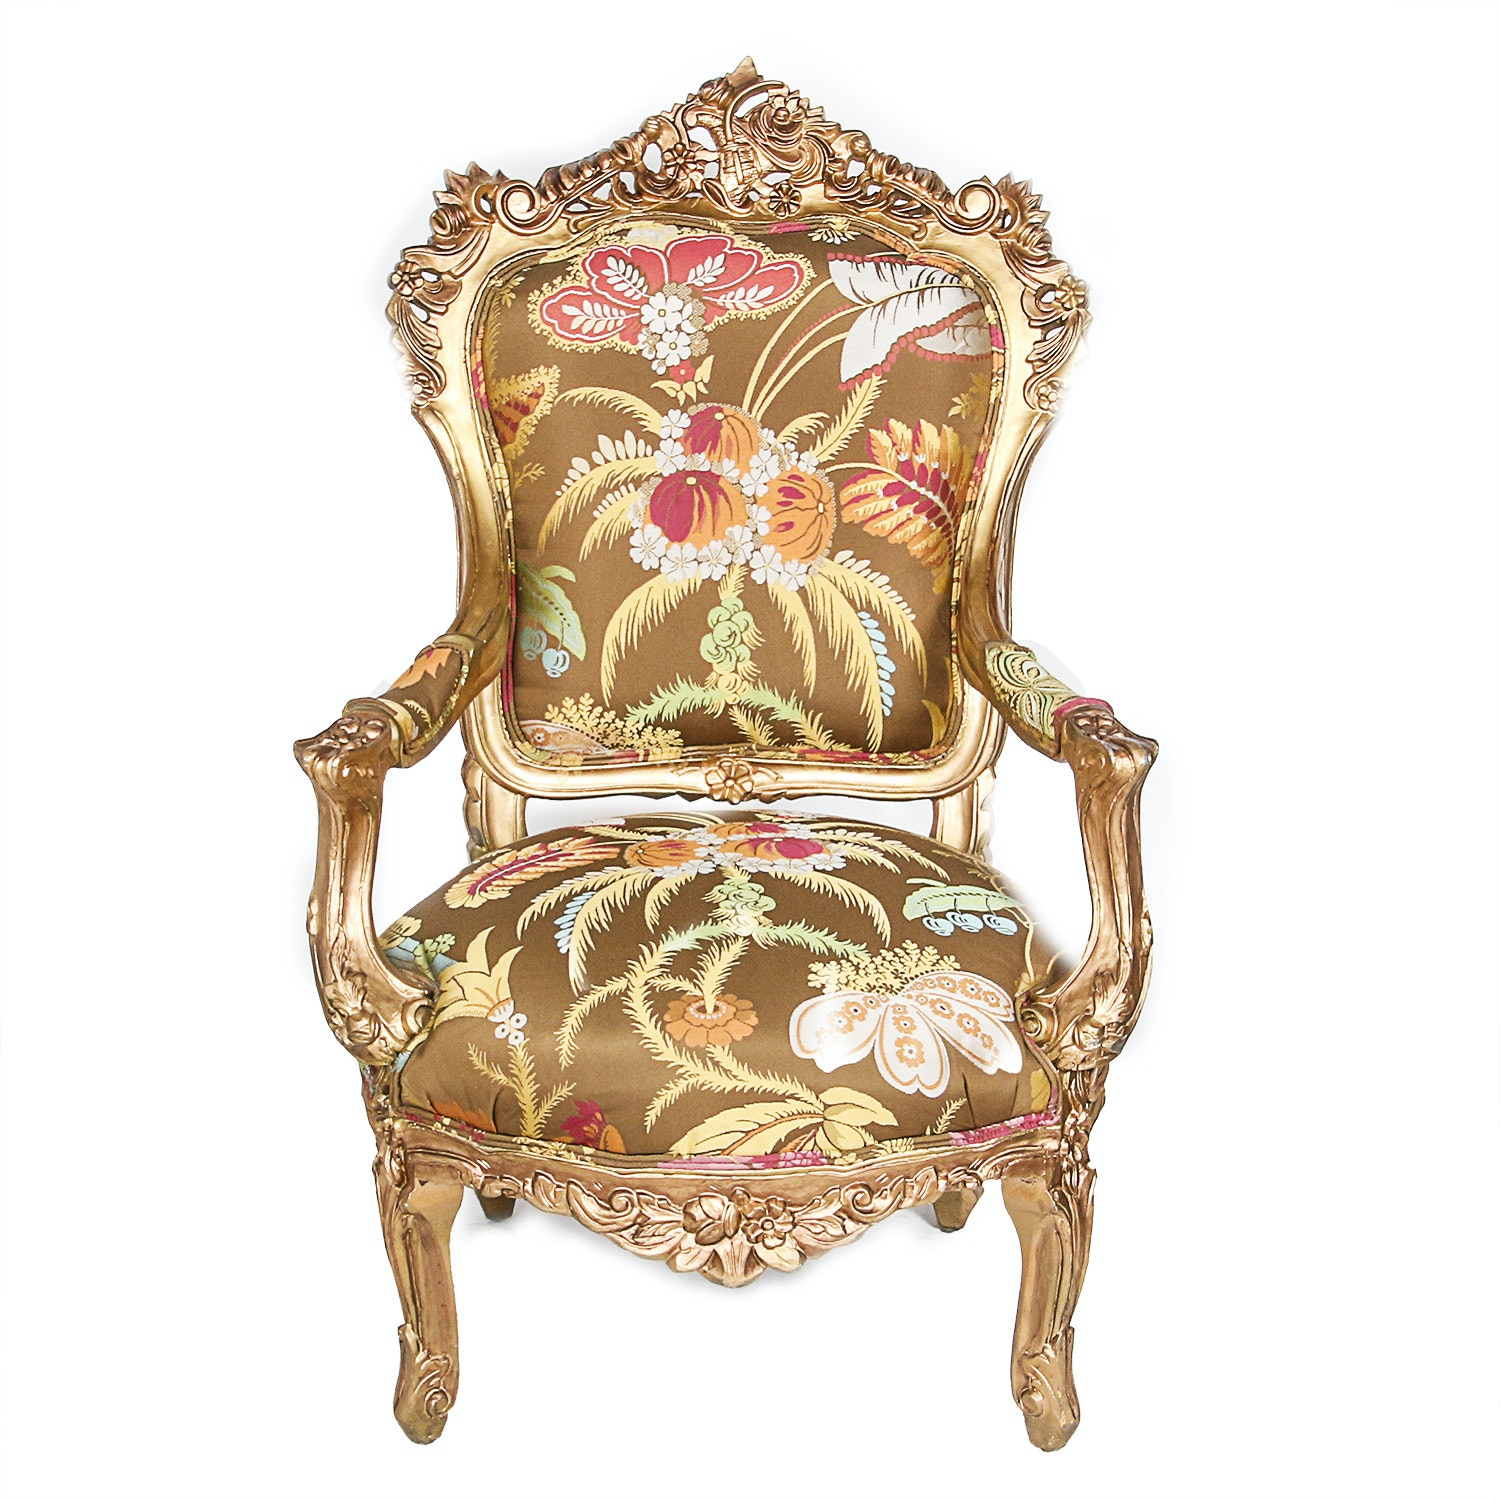 Rococo Style Giltwood Fauteuil Chair